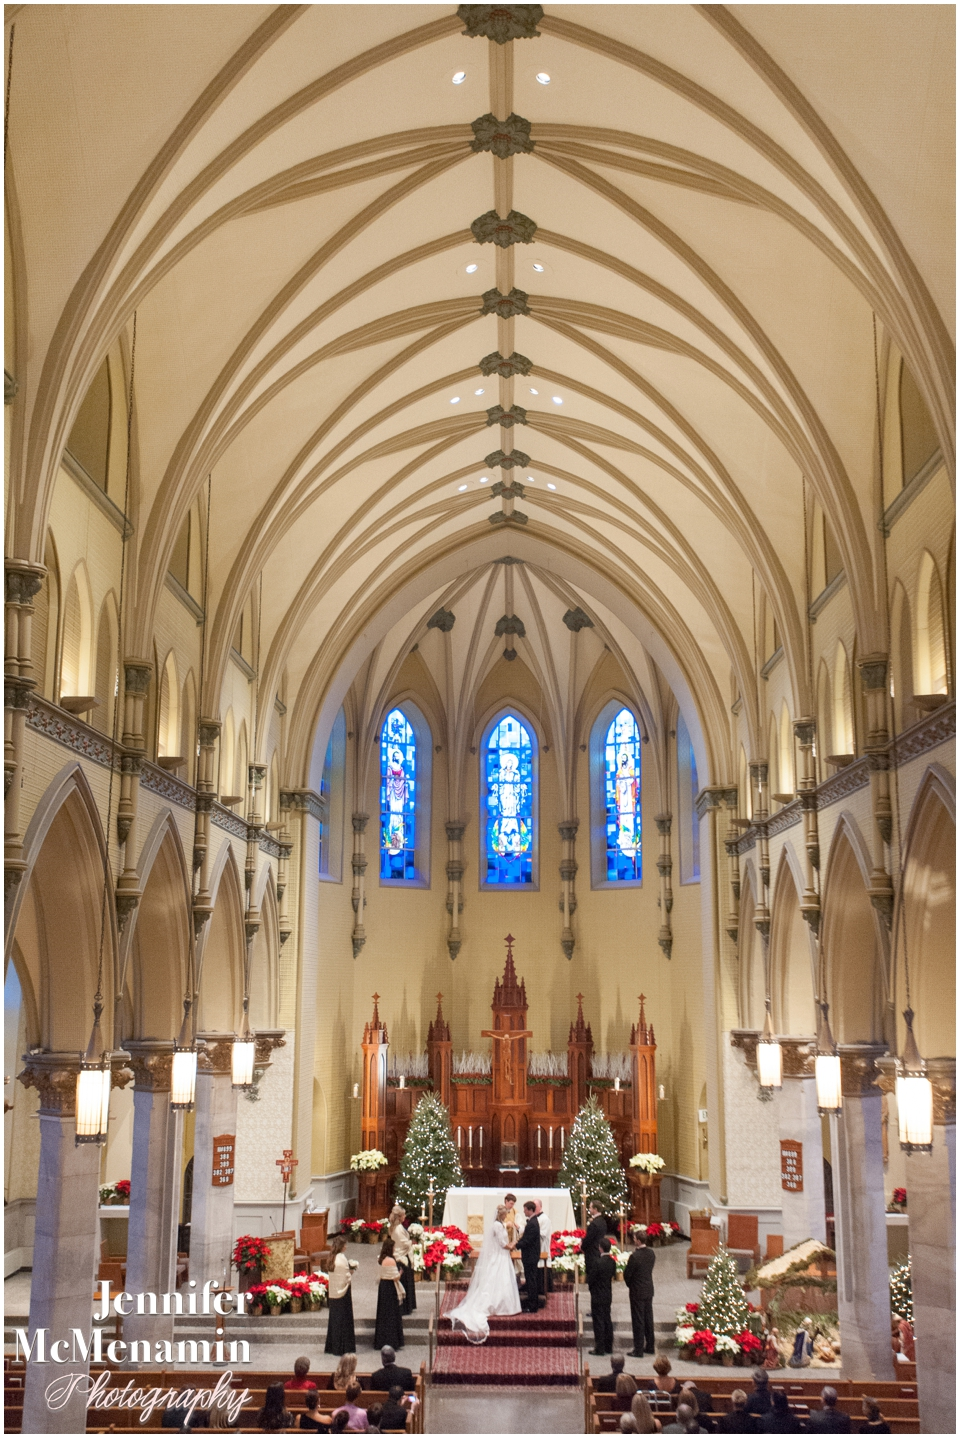 0049_RyanClemmens_01335-0358_JenniferMcMenaminPhotography_Immaculate-Conception-Church_The-Cloisters_Baltimore-wedding-photography_Baltimore-wedding-photographer